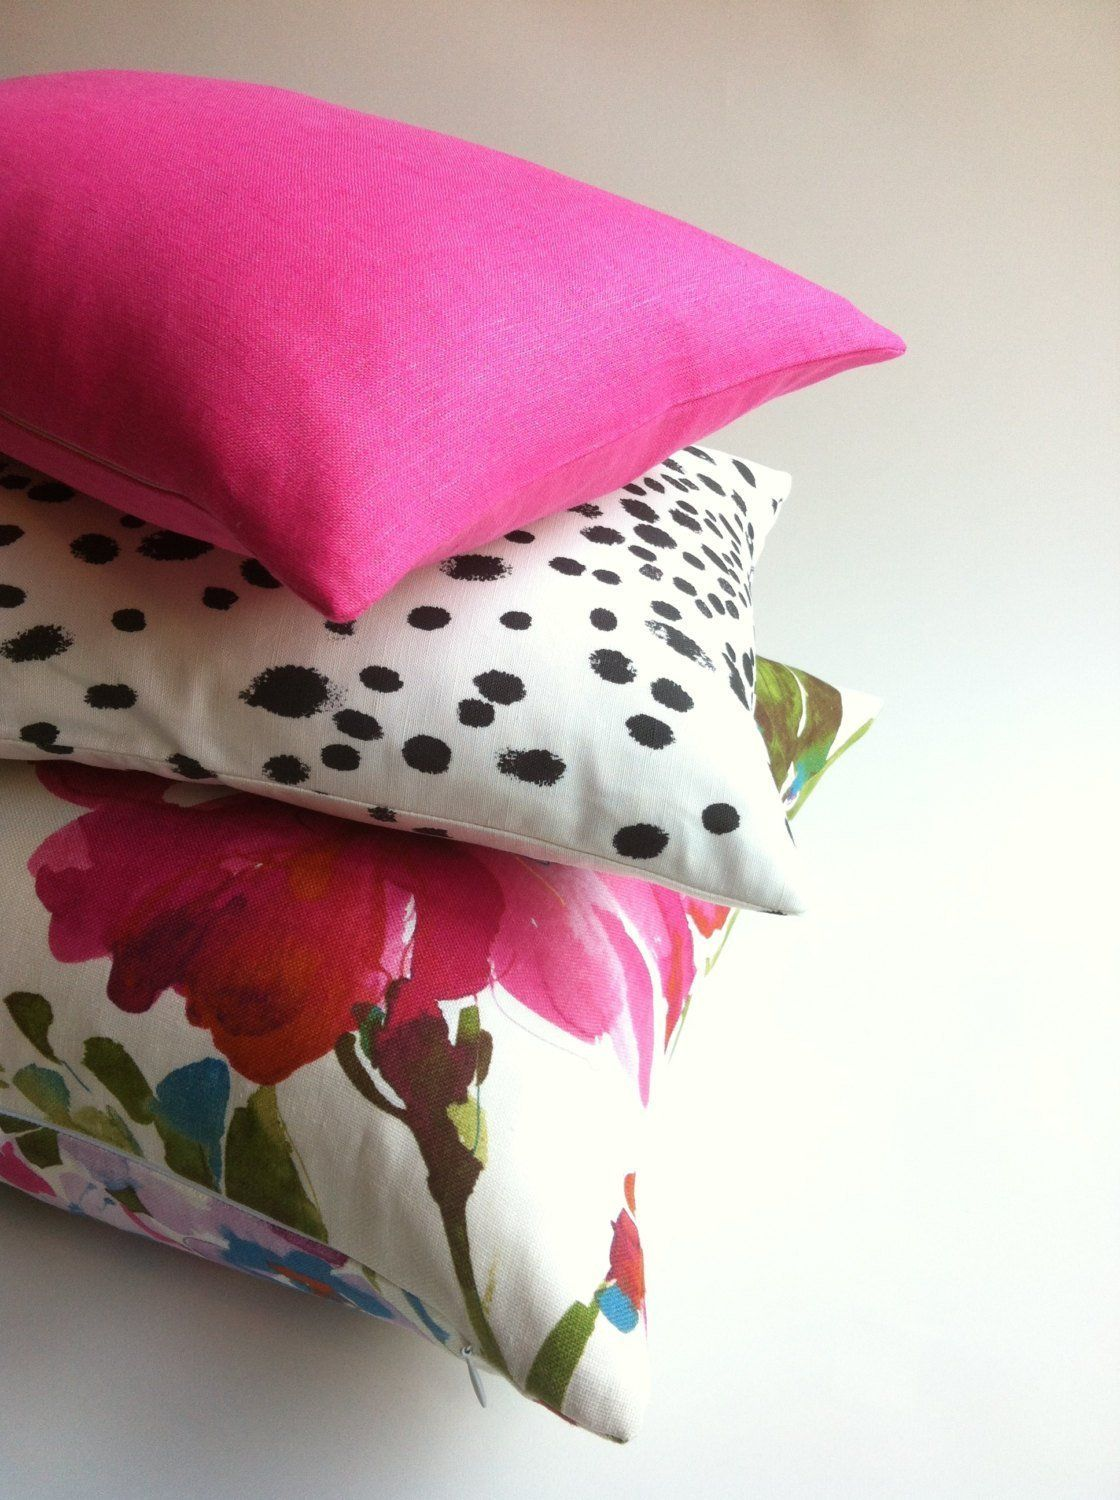 One Solid Fuchsia European Linen Decorative Zipper Pillow Cover Pink Linen Cushion Cover: 10 Sizes Available - 16x24